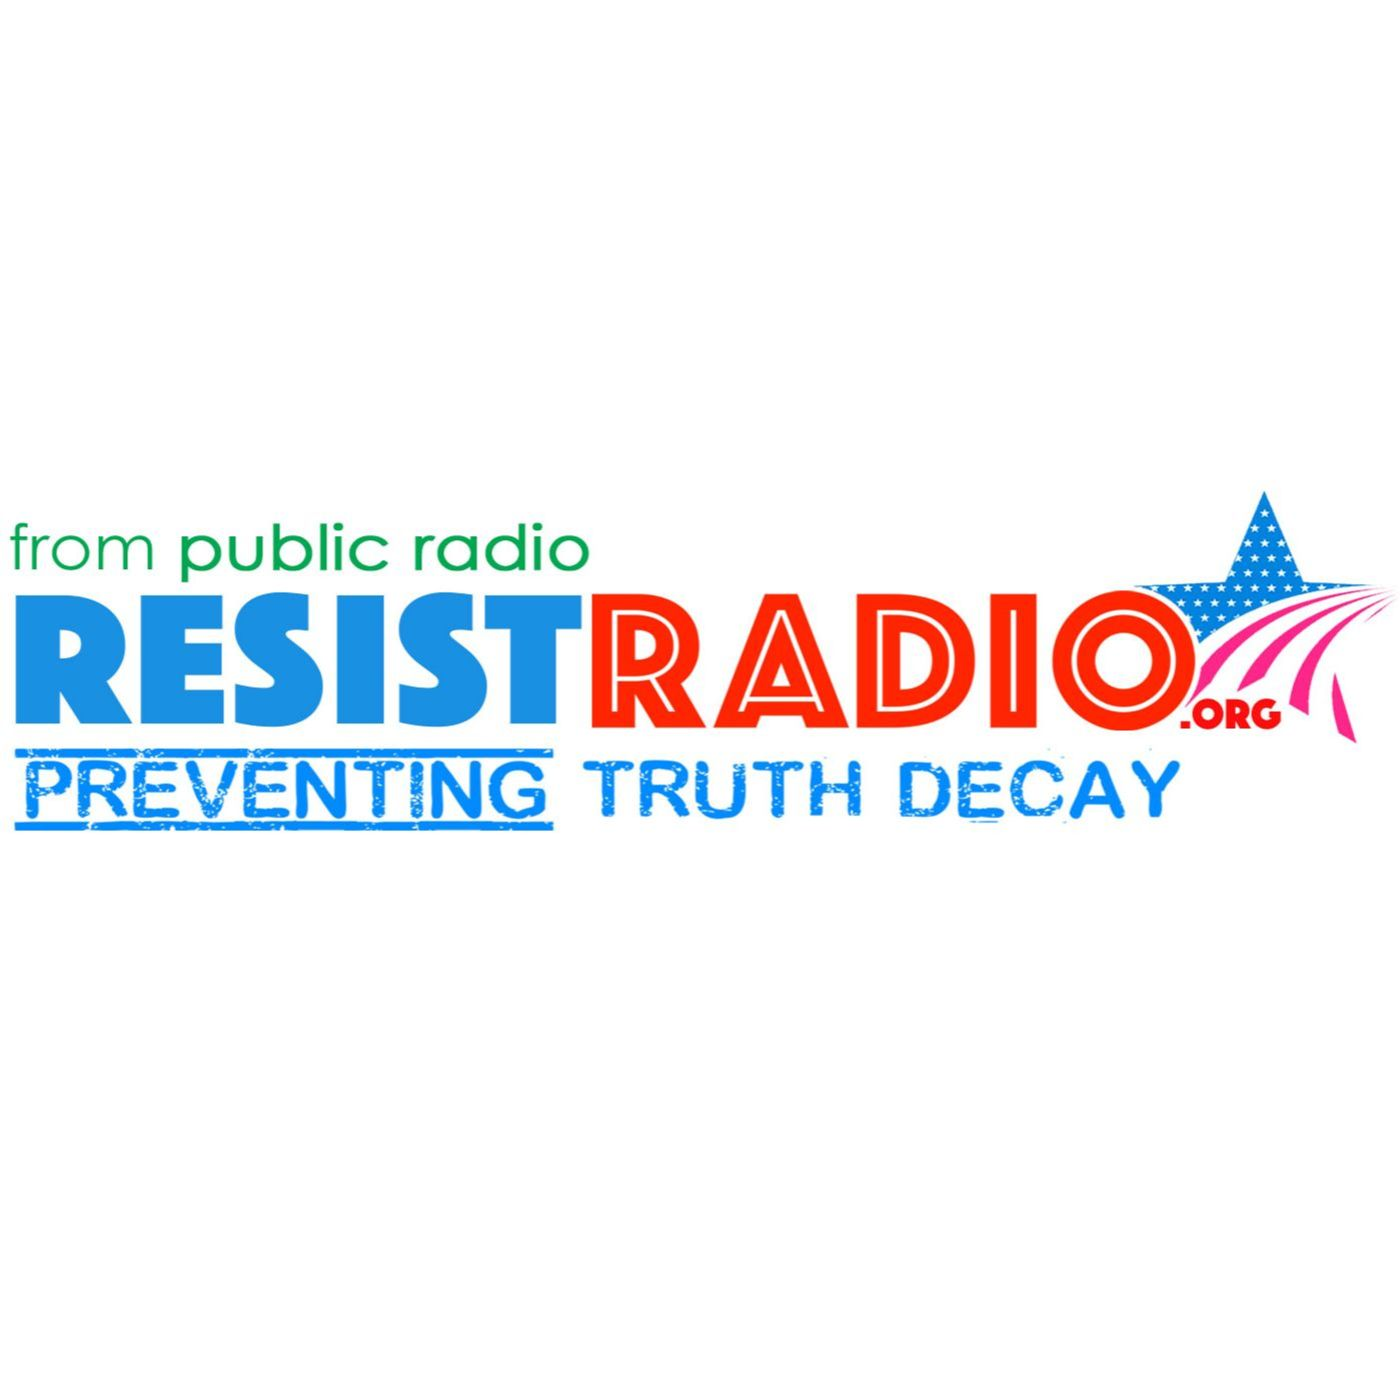 Resist Radio Trailer(3 Mins)